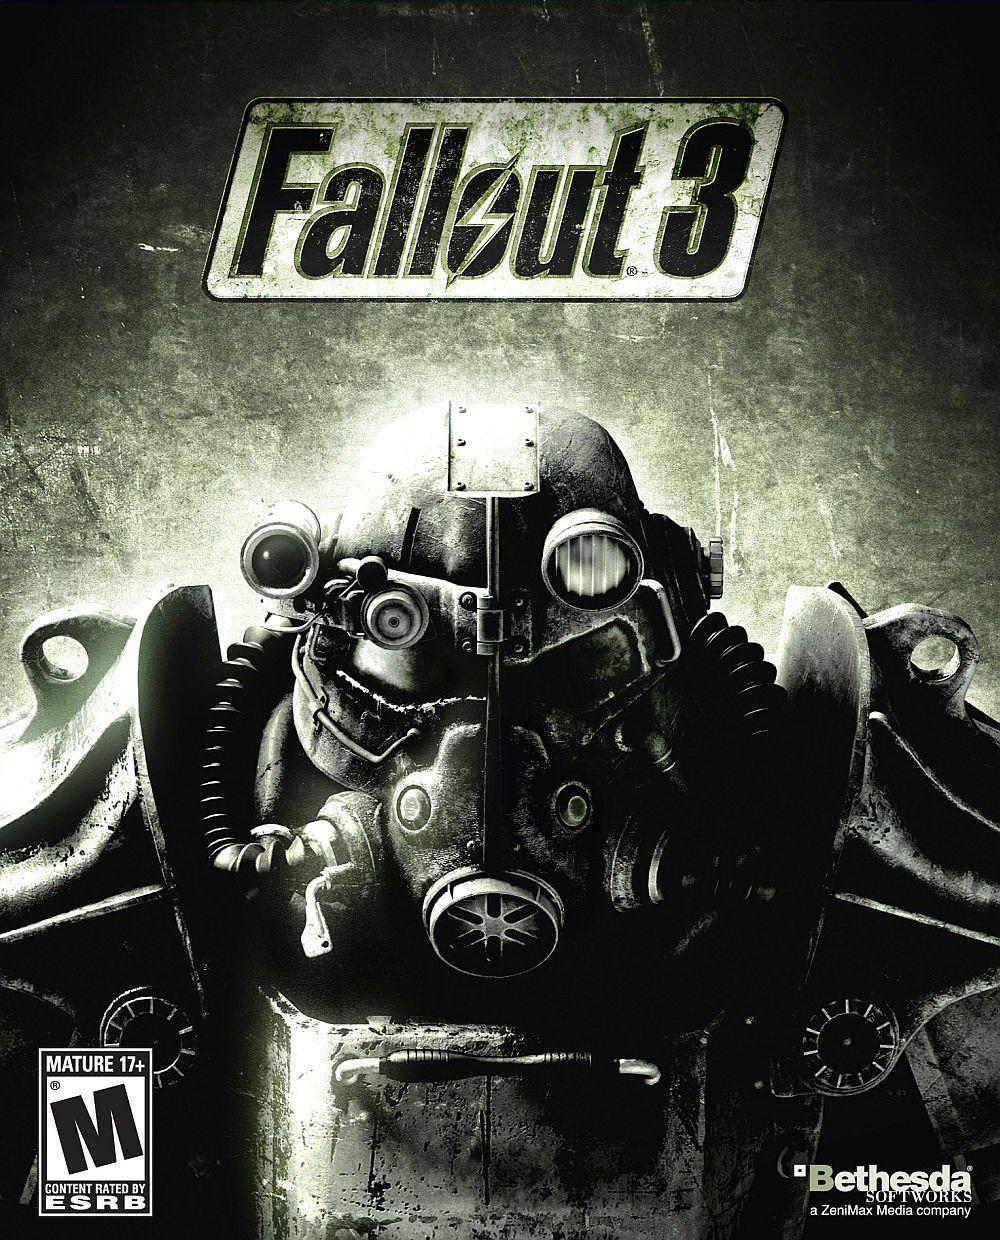 Fallout 3 cover art Iconic franchises here to stay possibly signalling shrinking innovation in gaming 